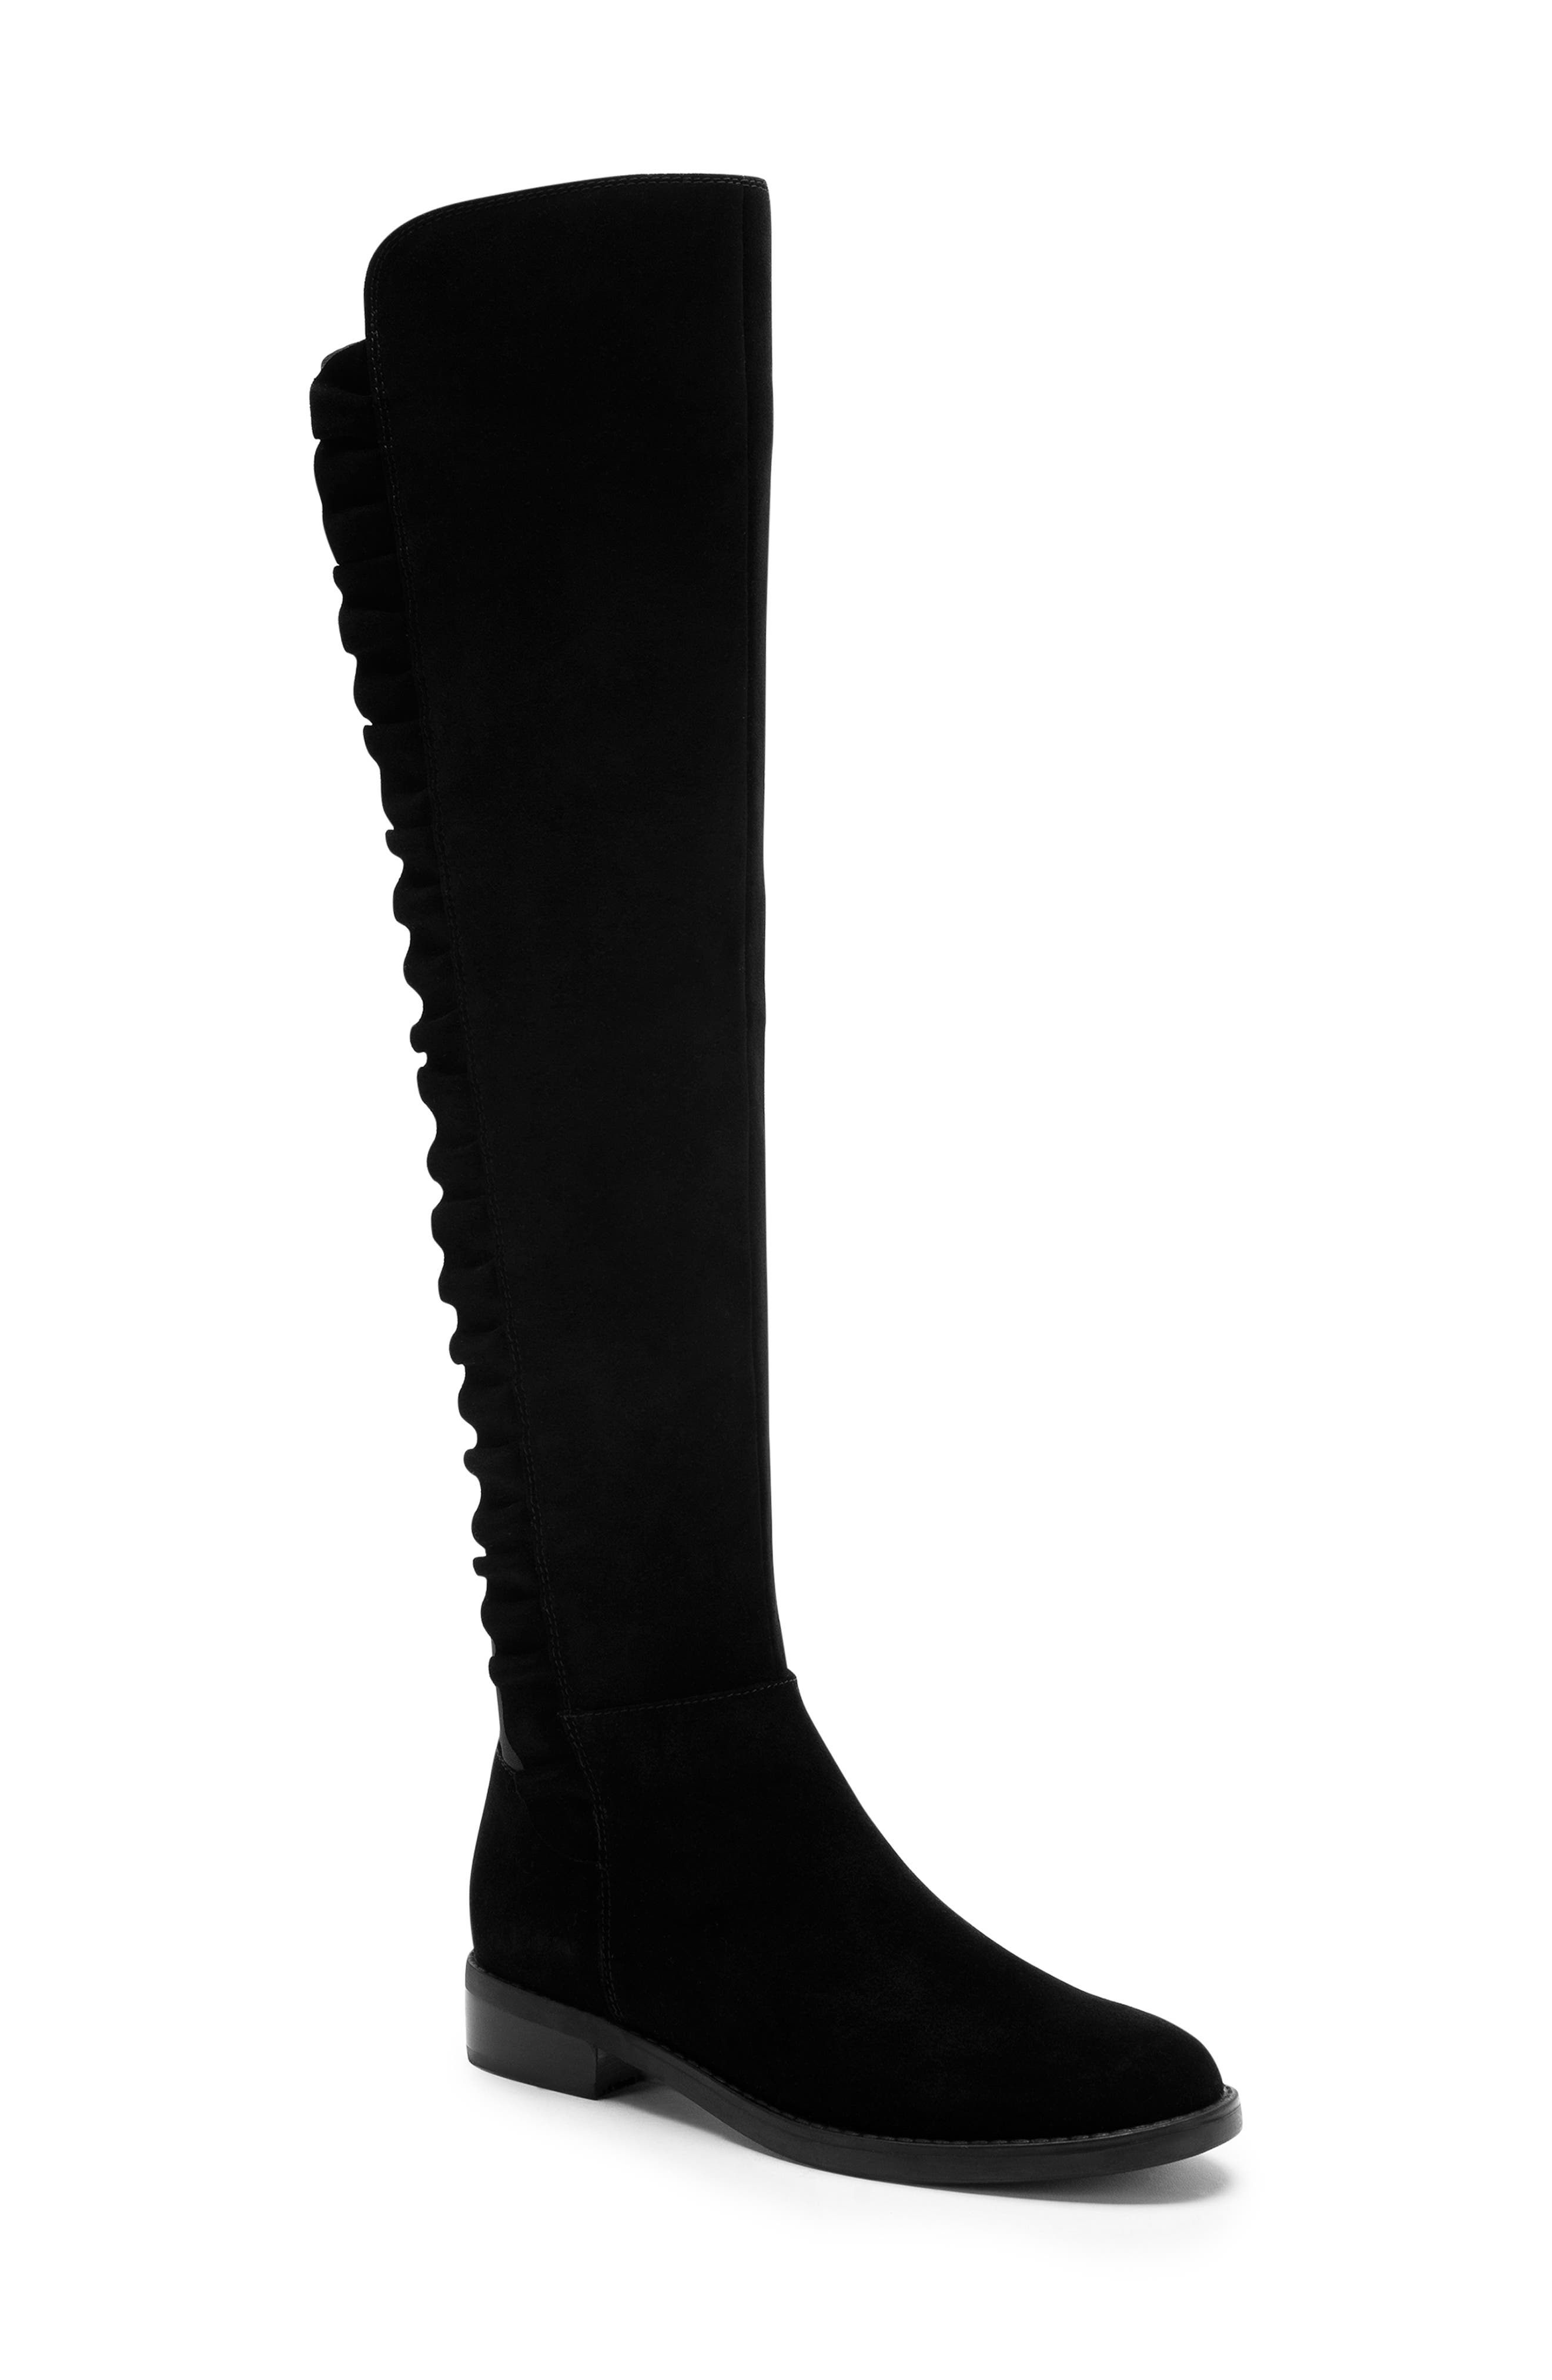 Blondo Ethos Over The Knee Waterproof Stretch Boot, Black